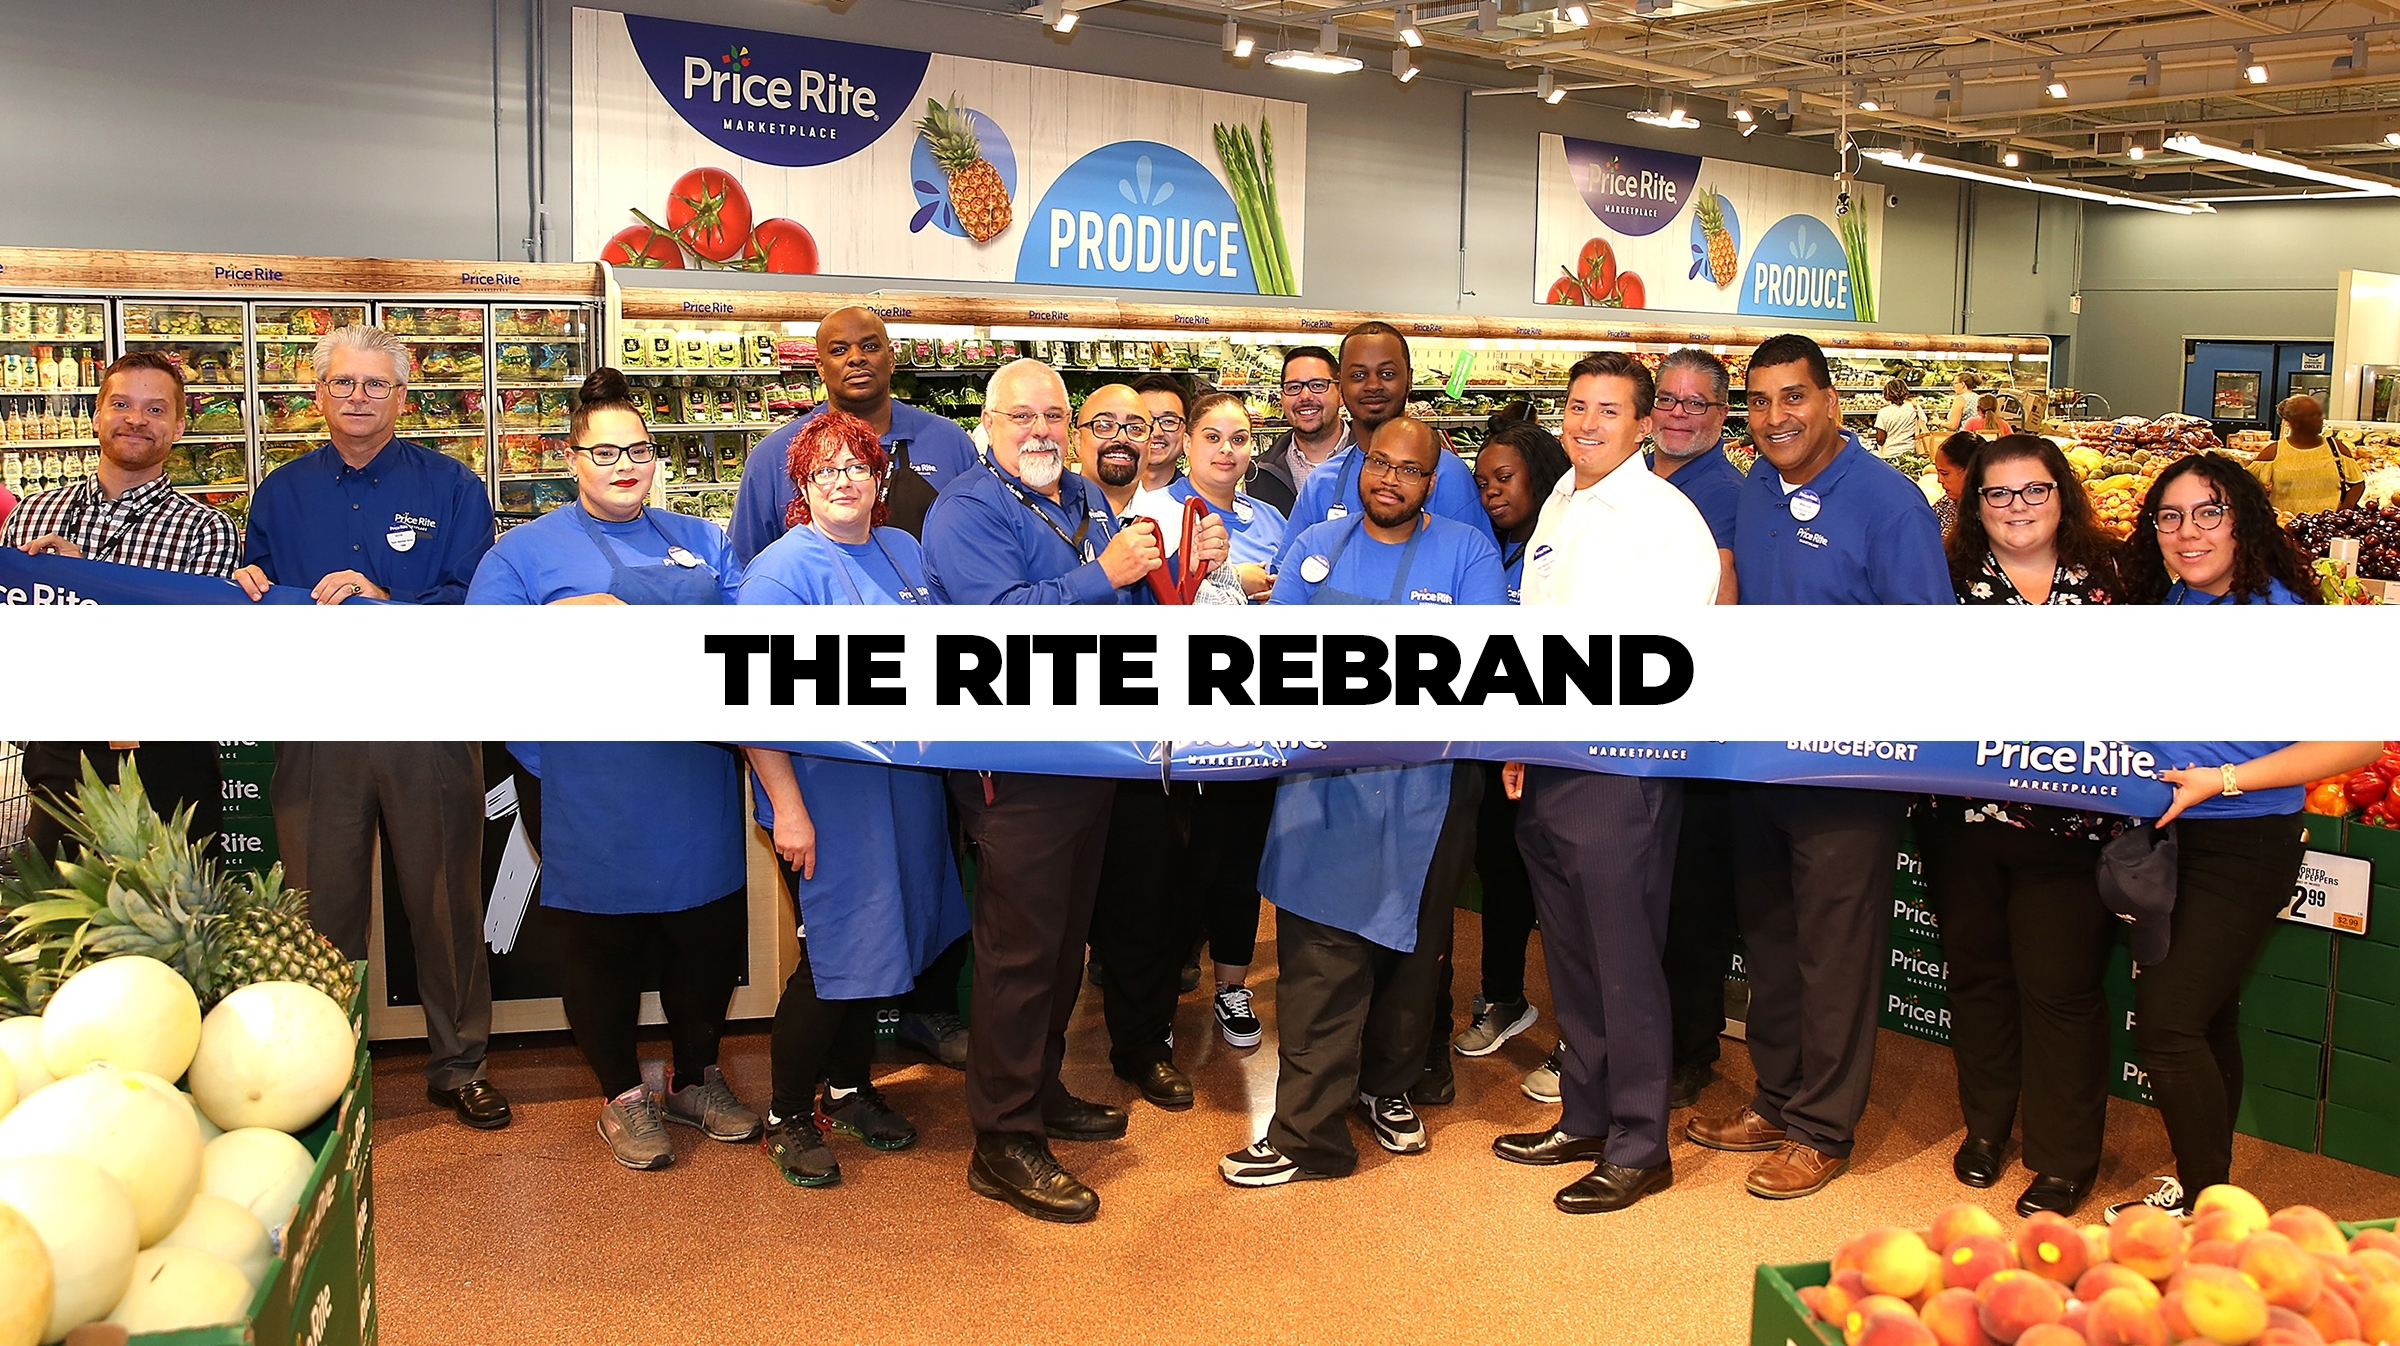 """Price Rite: Feeding Value and an Elevated Shopping Experience to """"Food Deserts"""""""